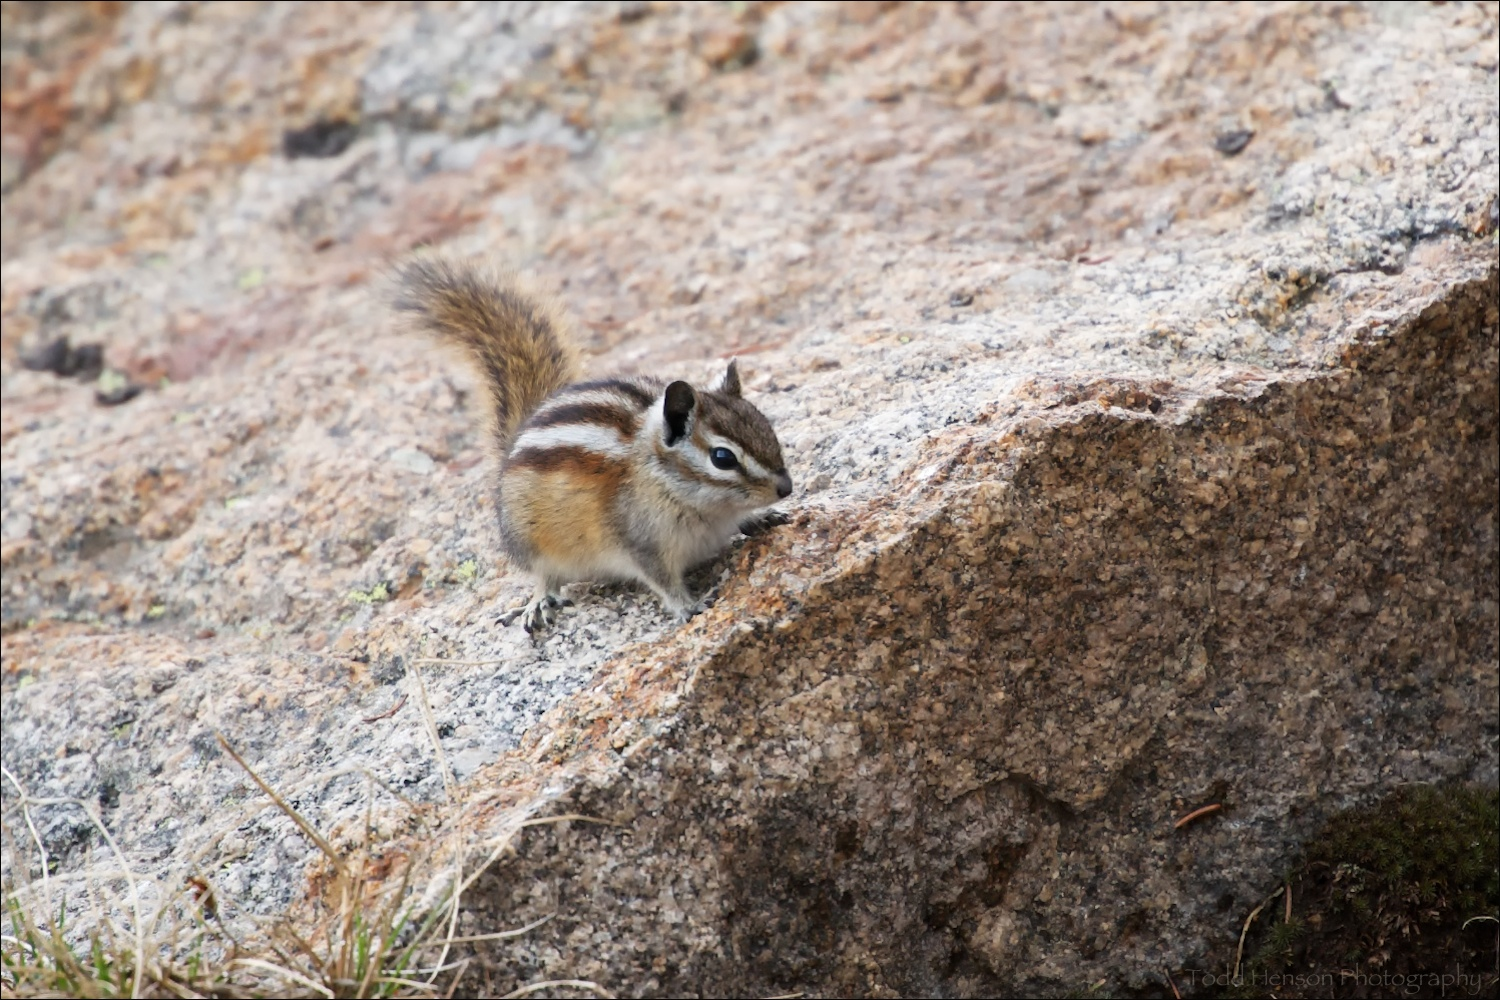 Least Chipmunk standing on edge of rock